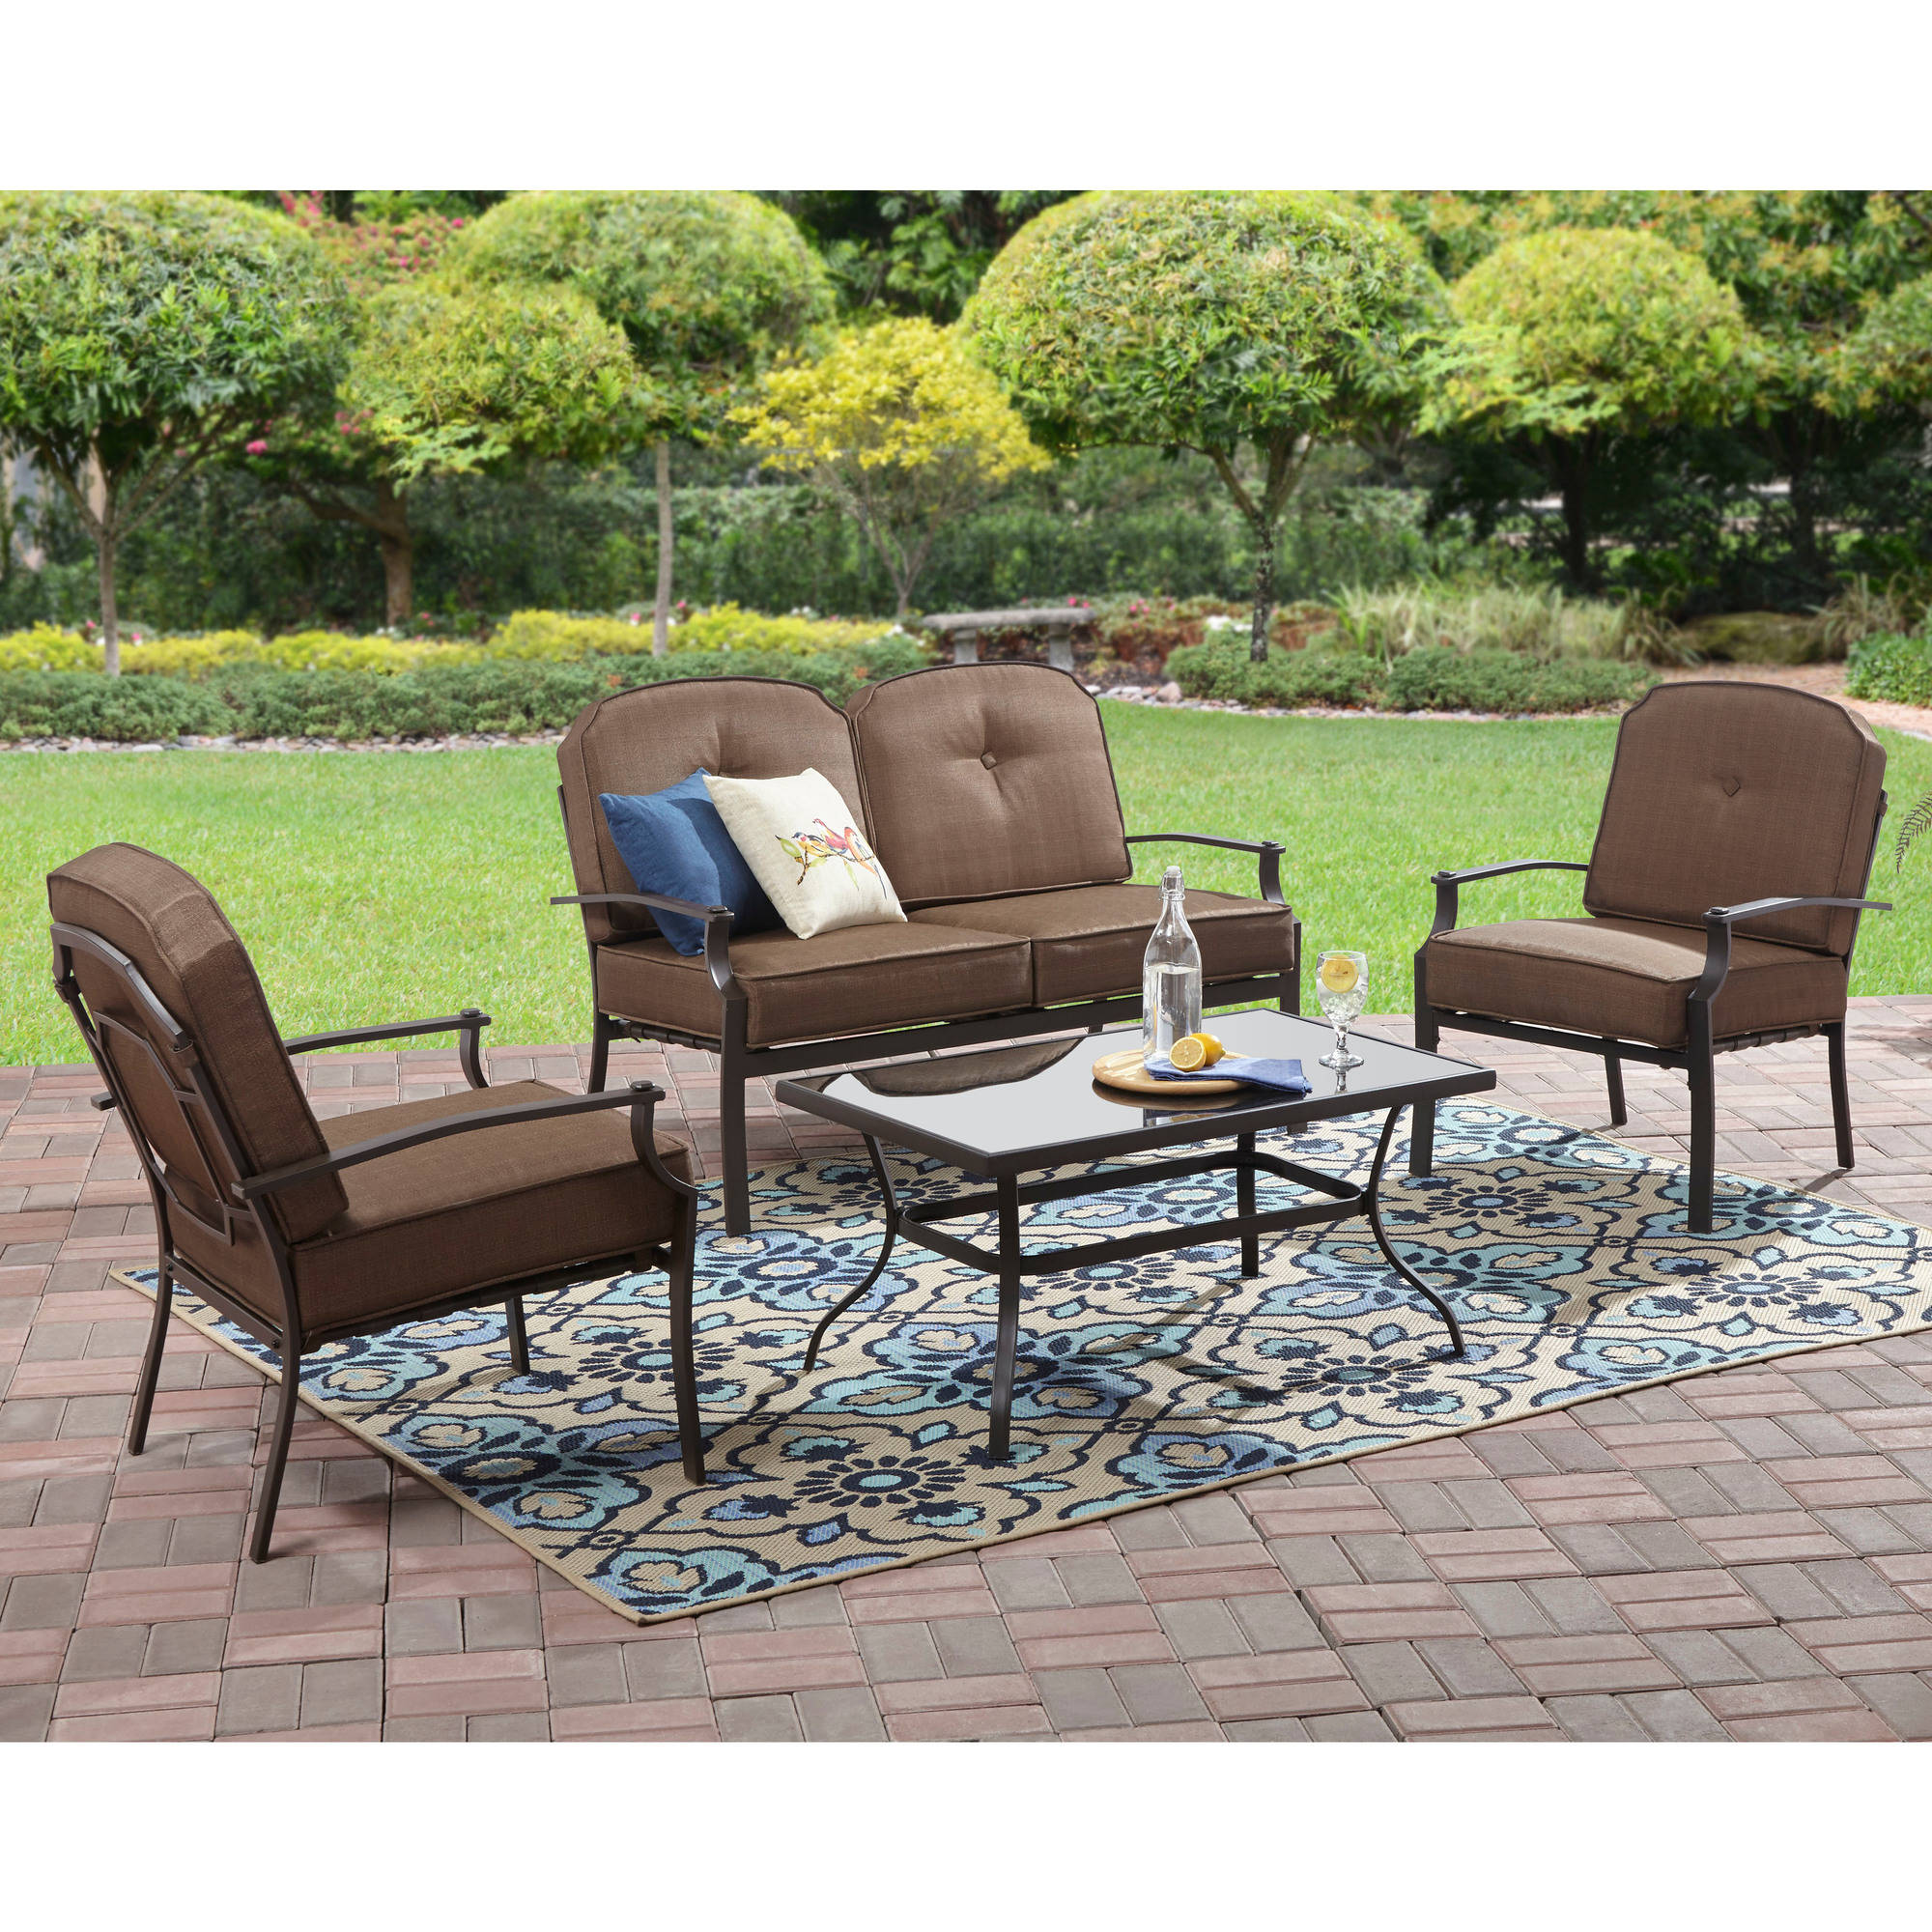 Mainstays Wentworth 4 Piece Patio Conversation Set, Seats 4   Walmart.com